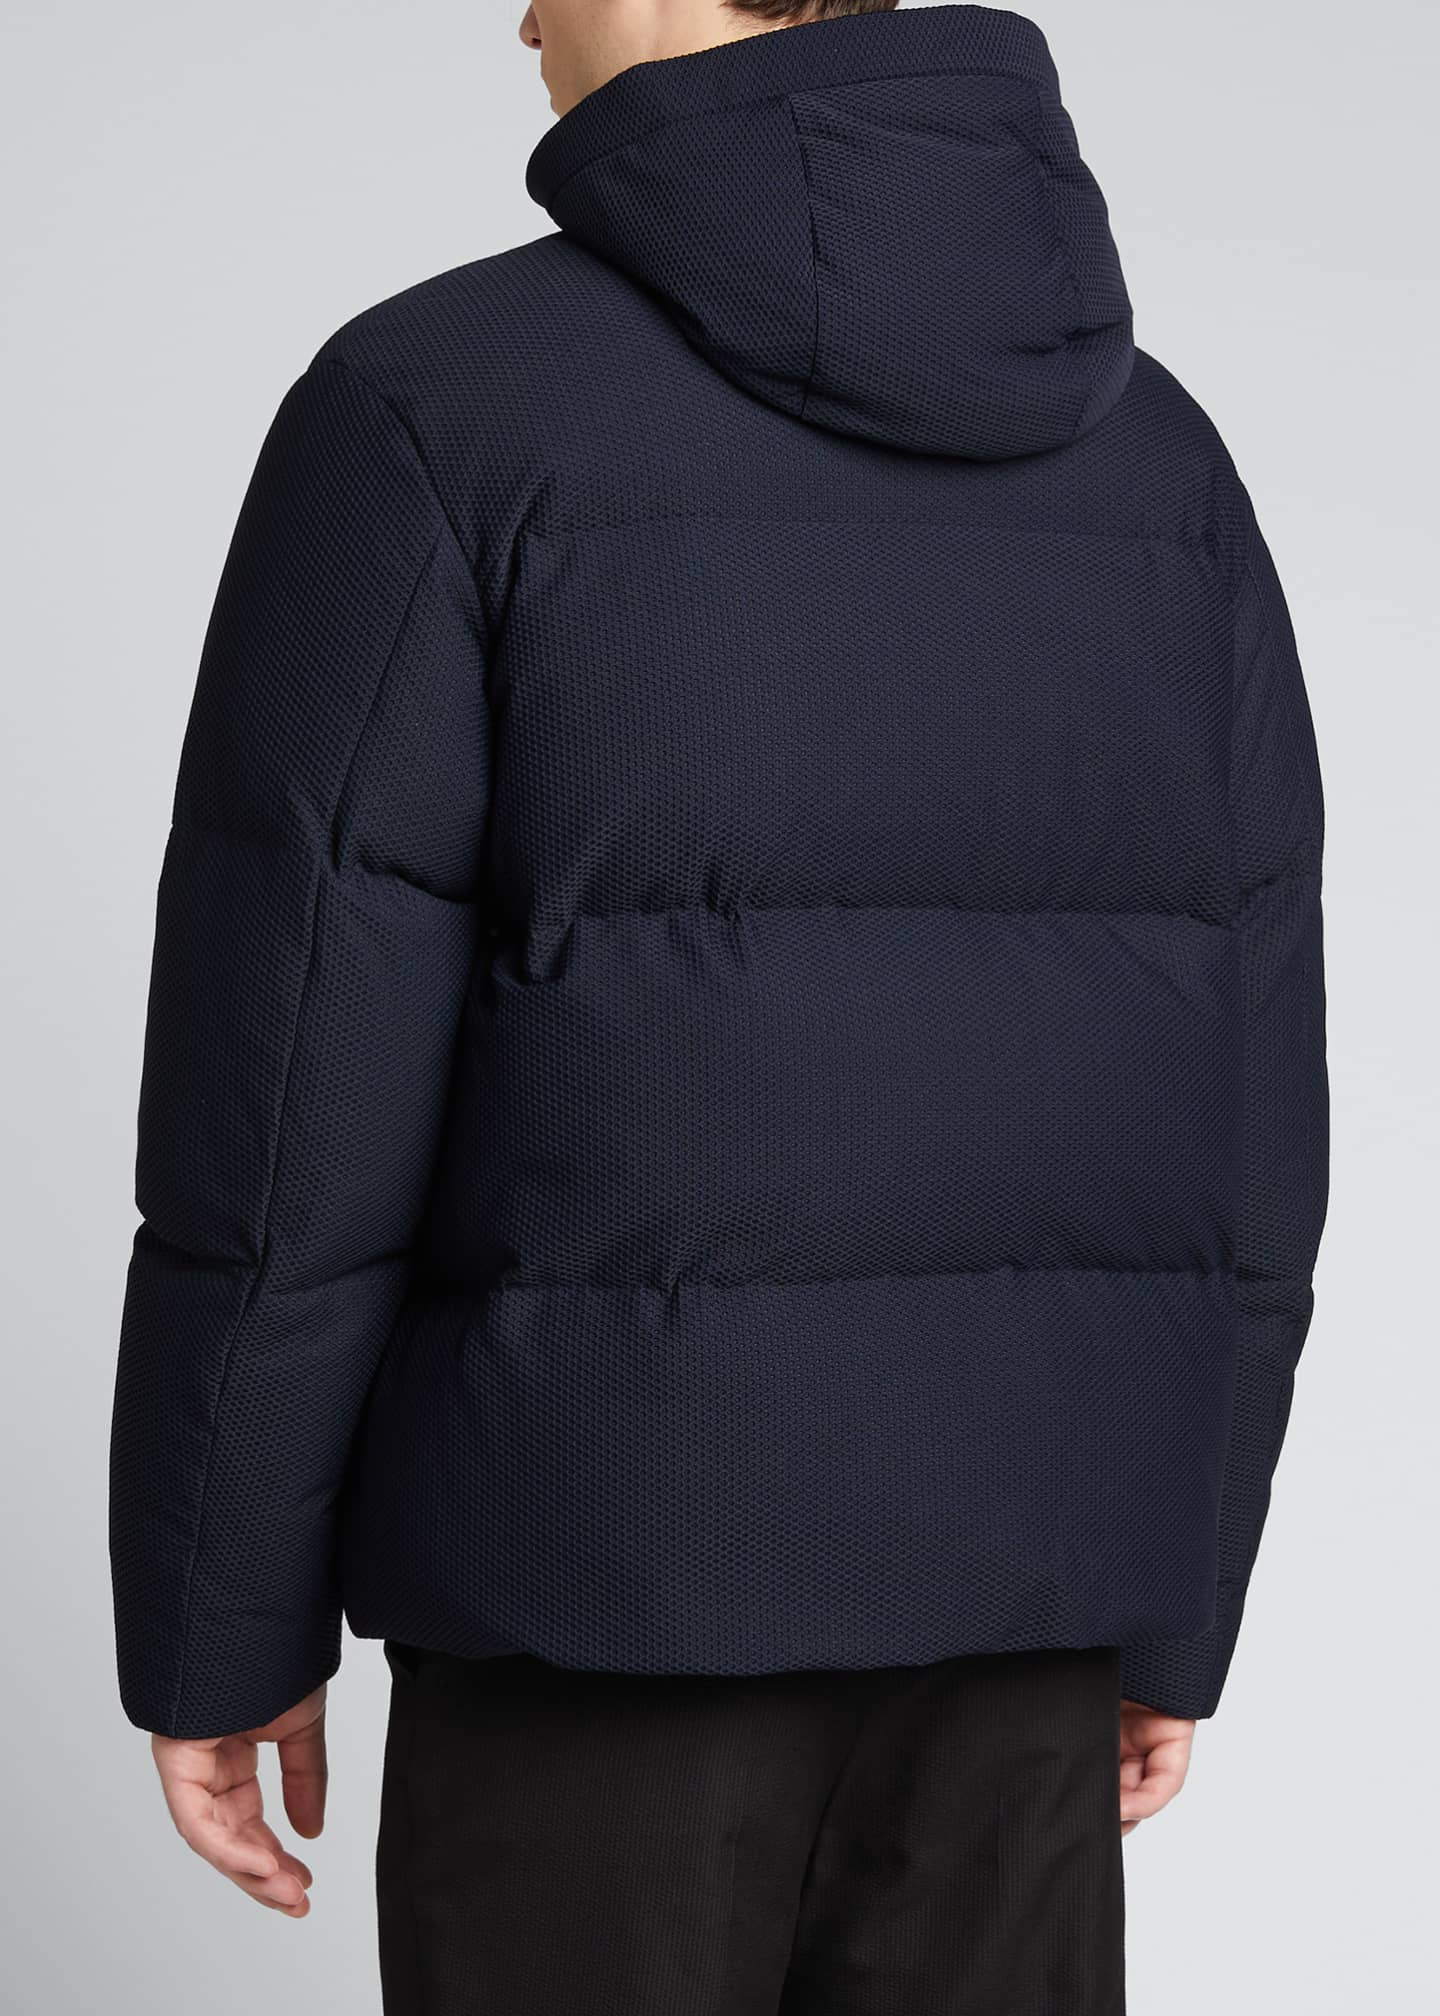 Image 2 of 5: High-Tech Honeycomb Knit Puffer Jacket